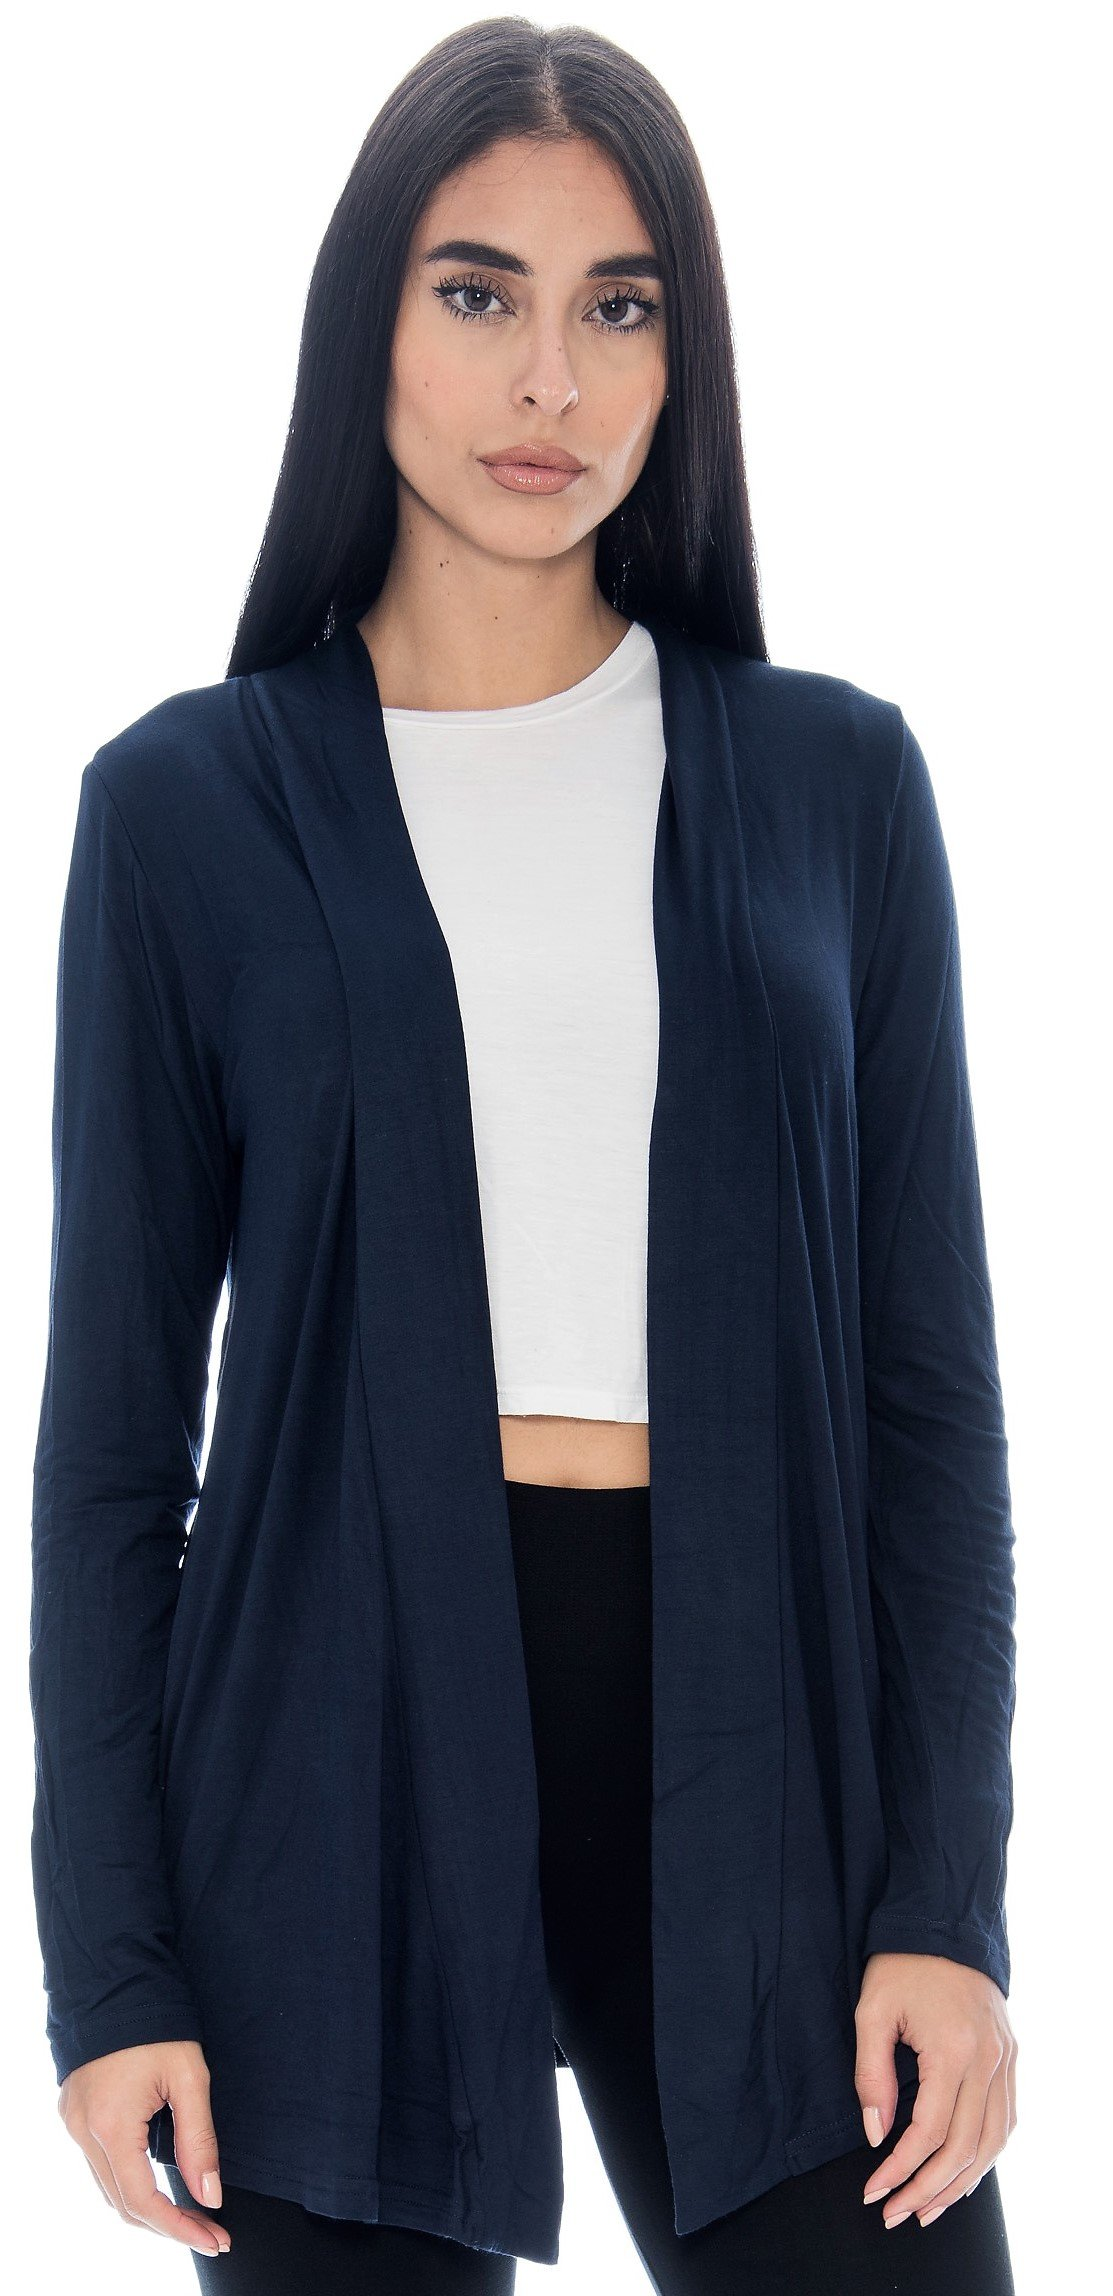 Unique Styles Open Front Cardigan for Women Warm Long Sleeve Lightweight Top (Large, Navy)